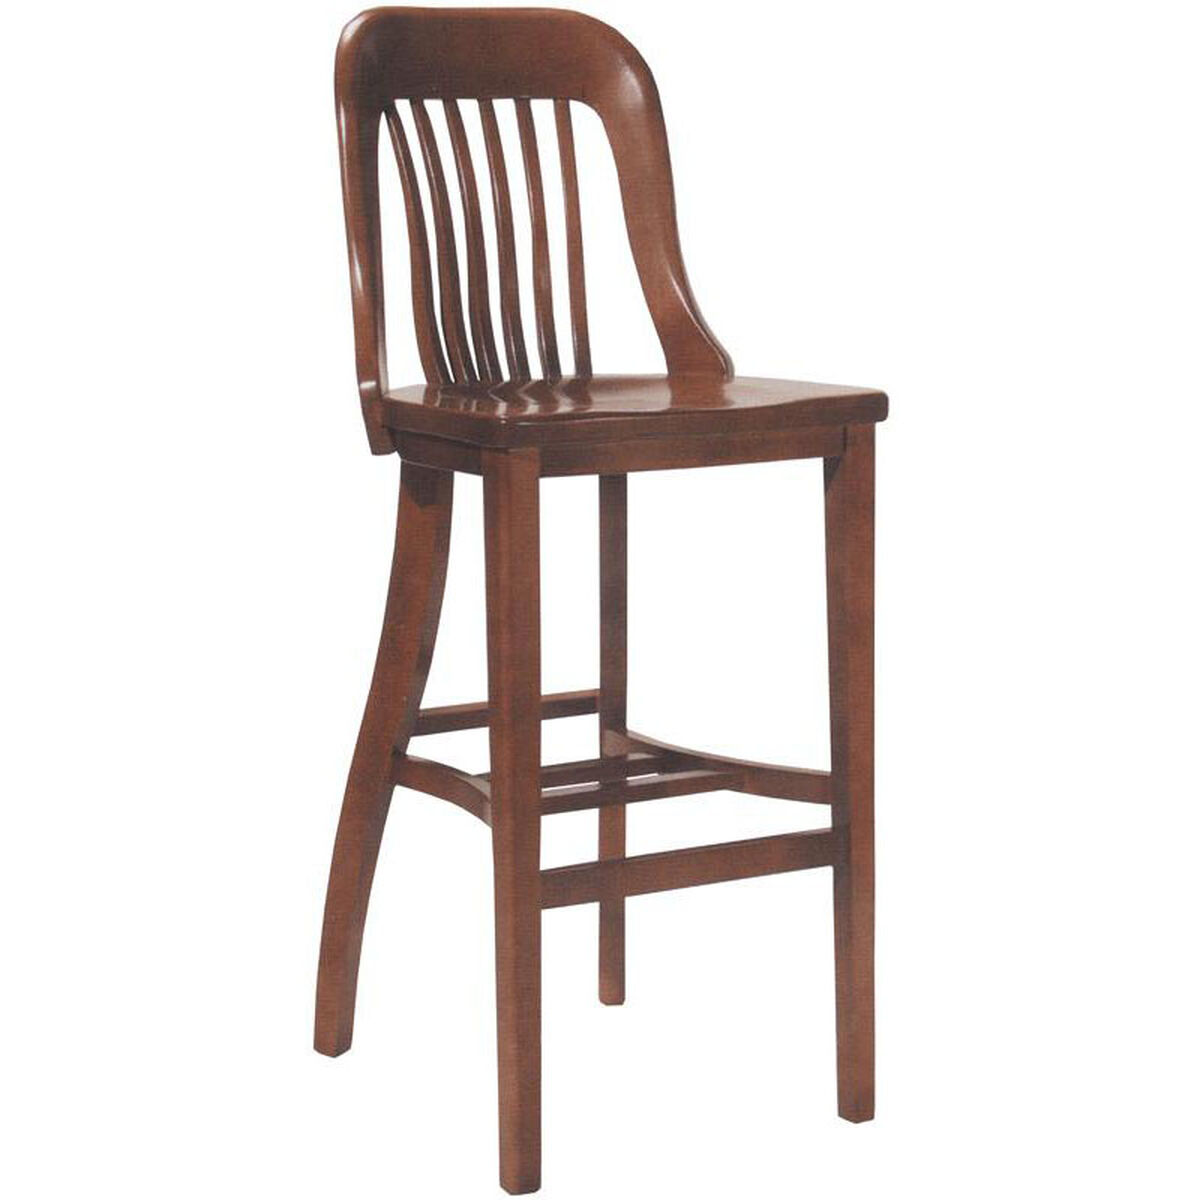 Our 6891 Bar Stool W Slat Back Wood Saddle Seat Is On Now